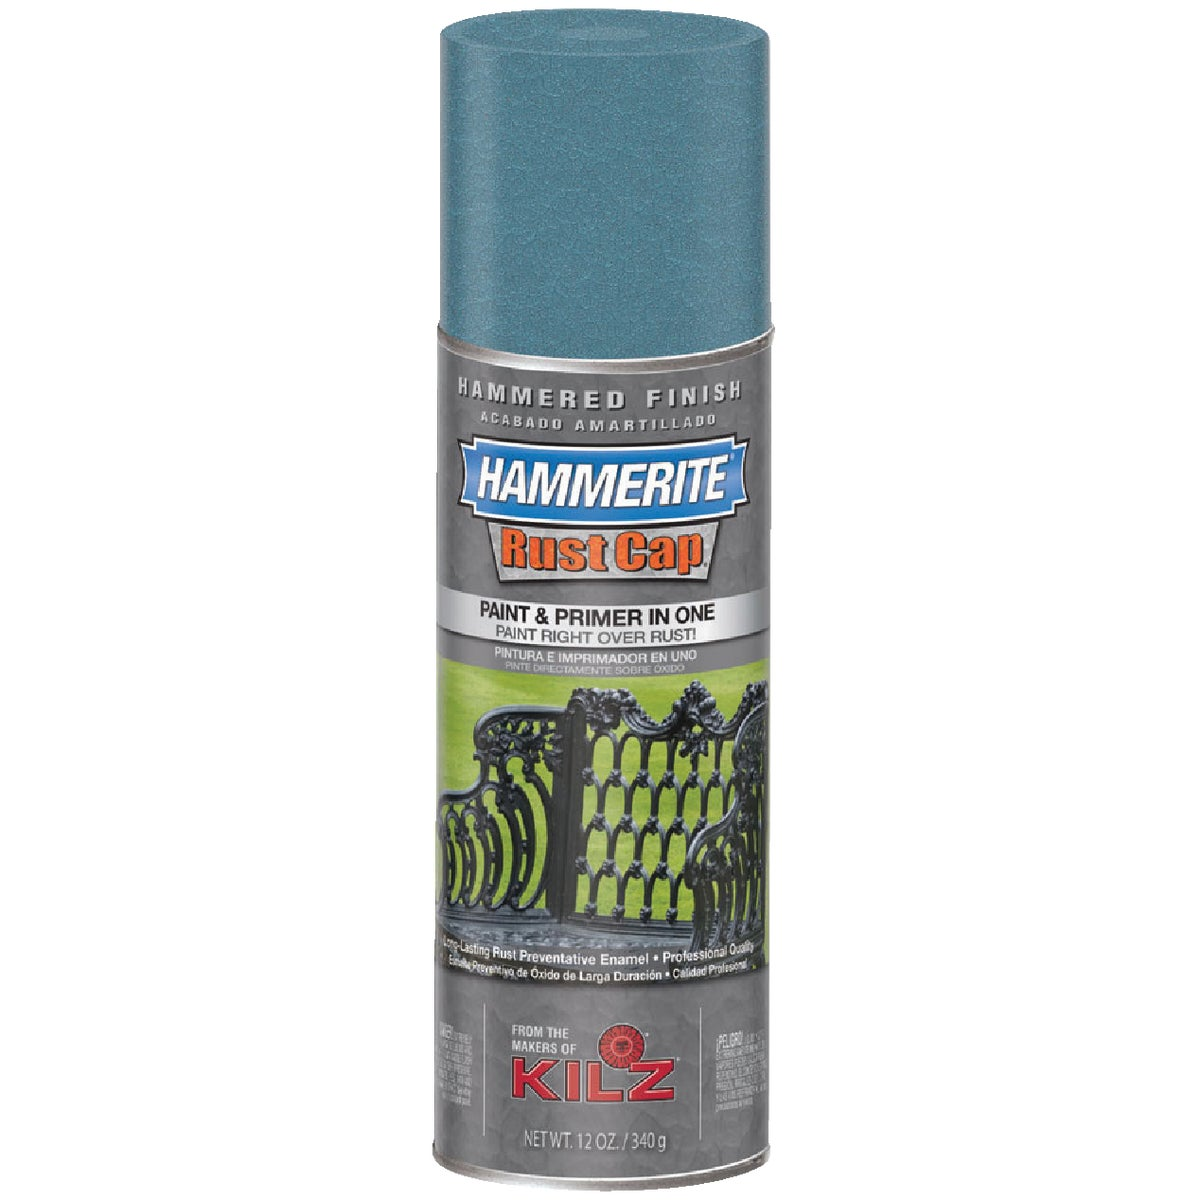 L BLU HAMMRD SPRAY PAINT - 41150 by Masterchem